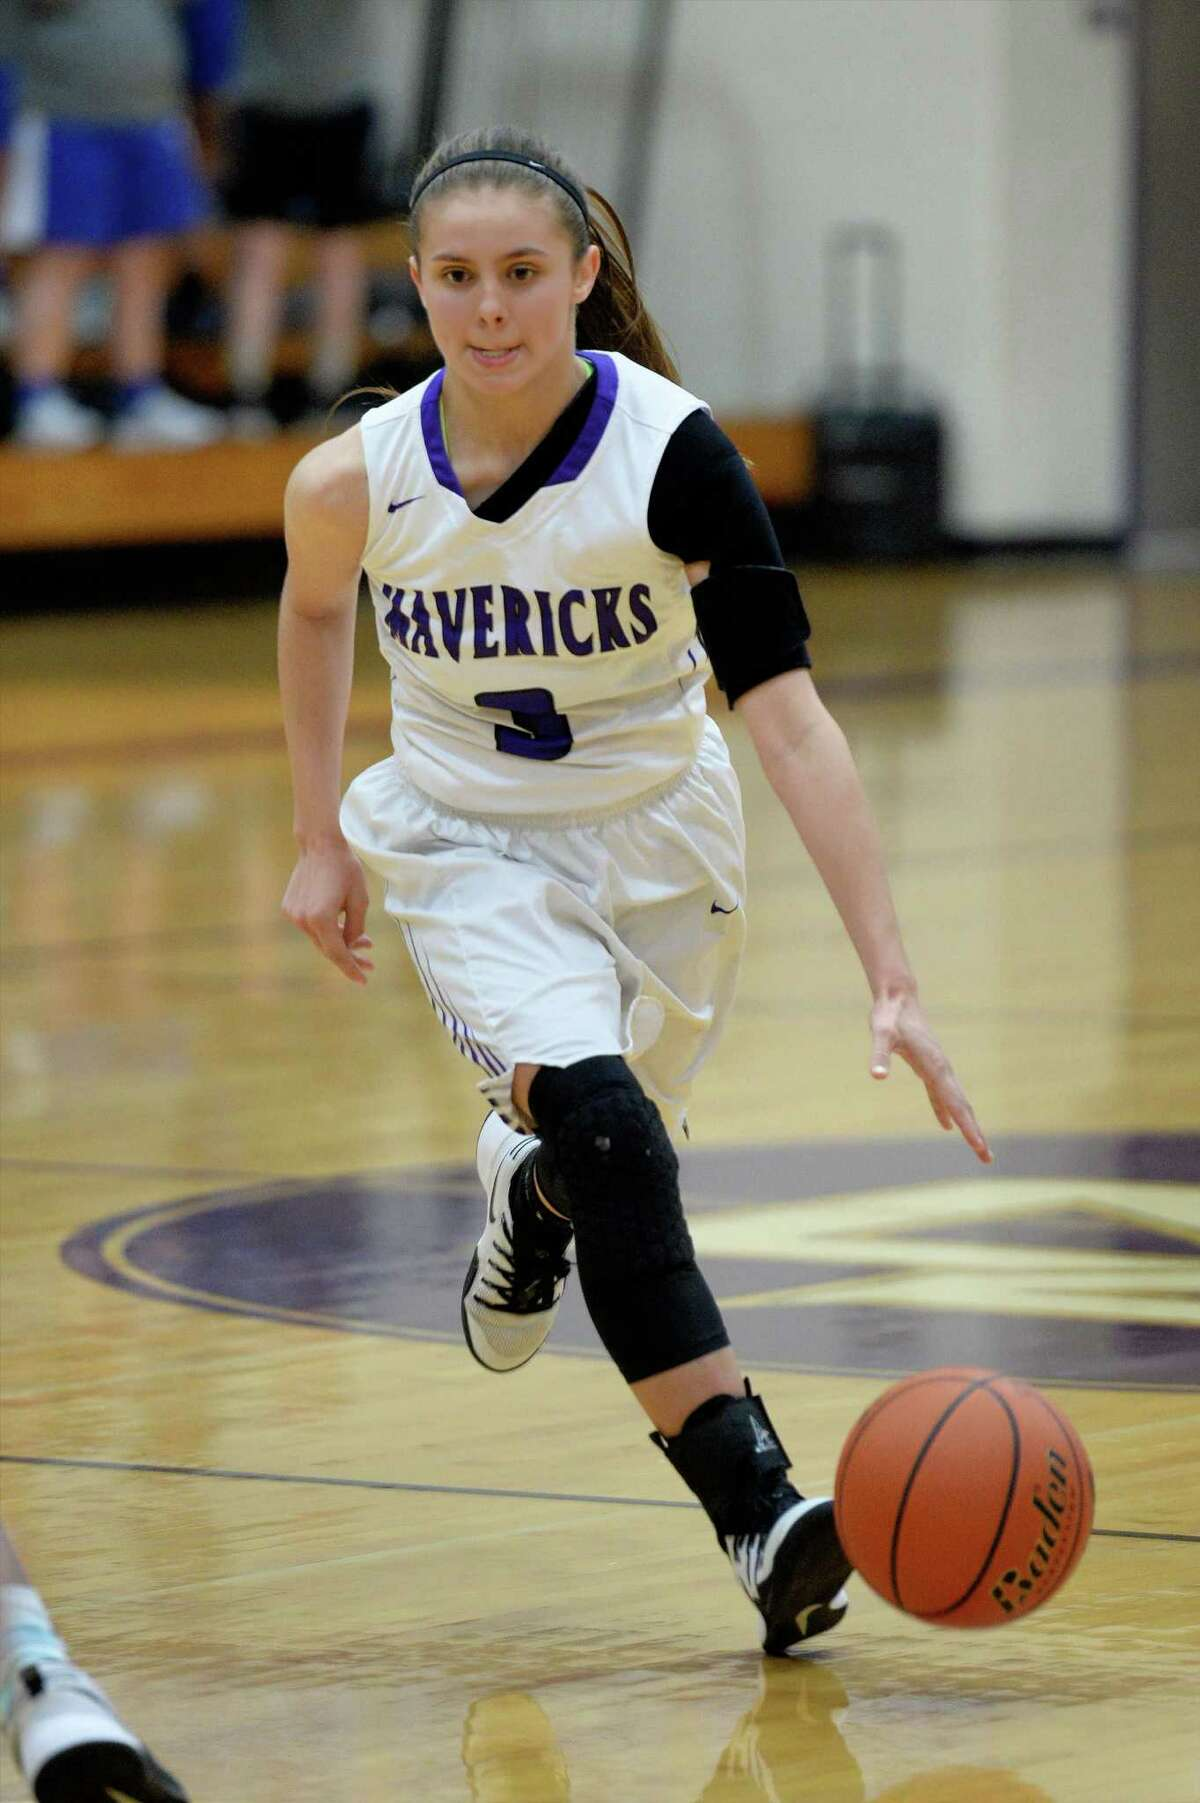 Samantha Washburn (3) of Morton Ranch dribbles past mid-court during the second half of a girls basketball game between the Morton Ranch Mavericks and the Taylor Mustangs on Tuesday January 31, 2017 at Morton Ranch High School, Katy, TX.